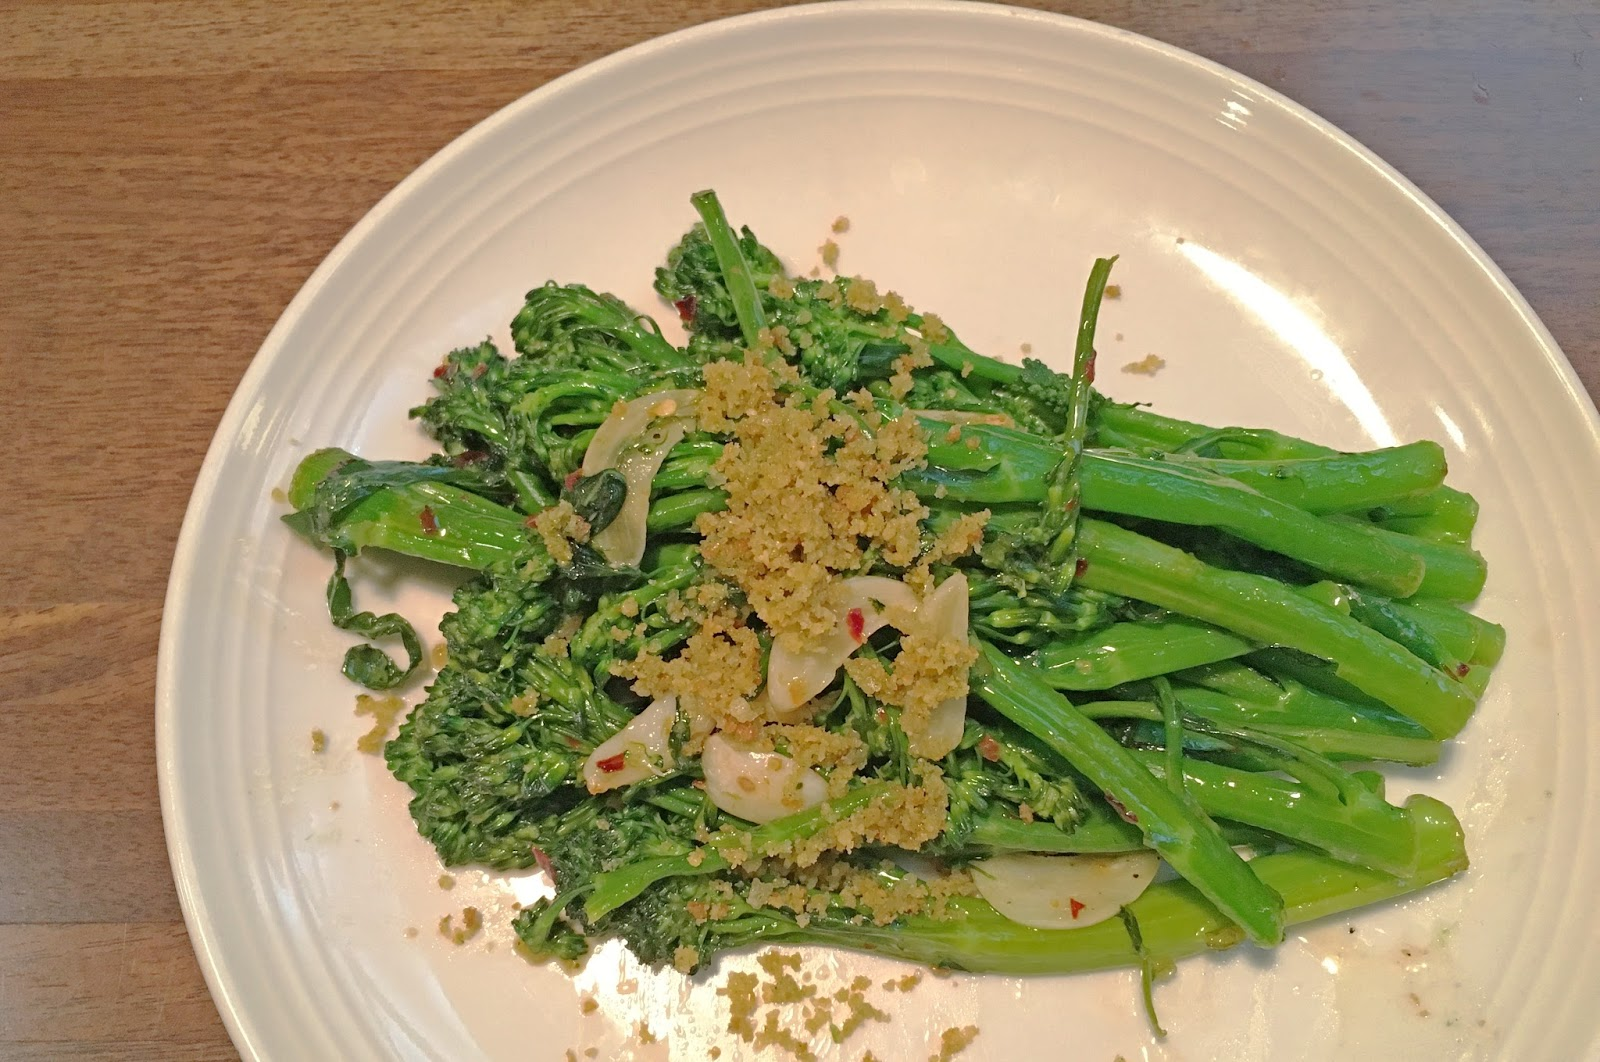 broccolini at Vivo 53 - an Italian restaurant in Fort Worth, Texas